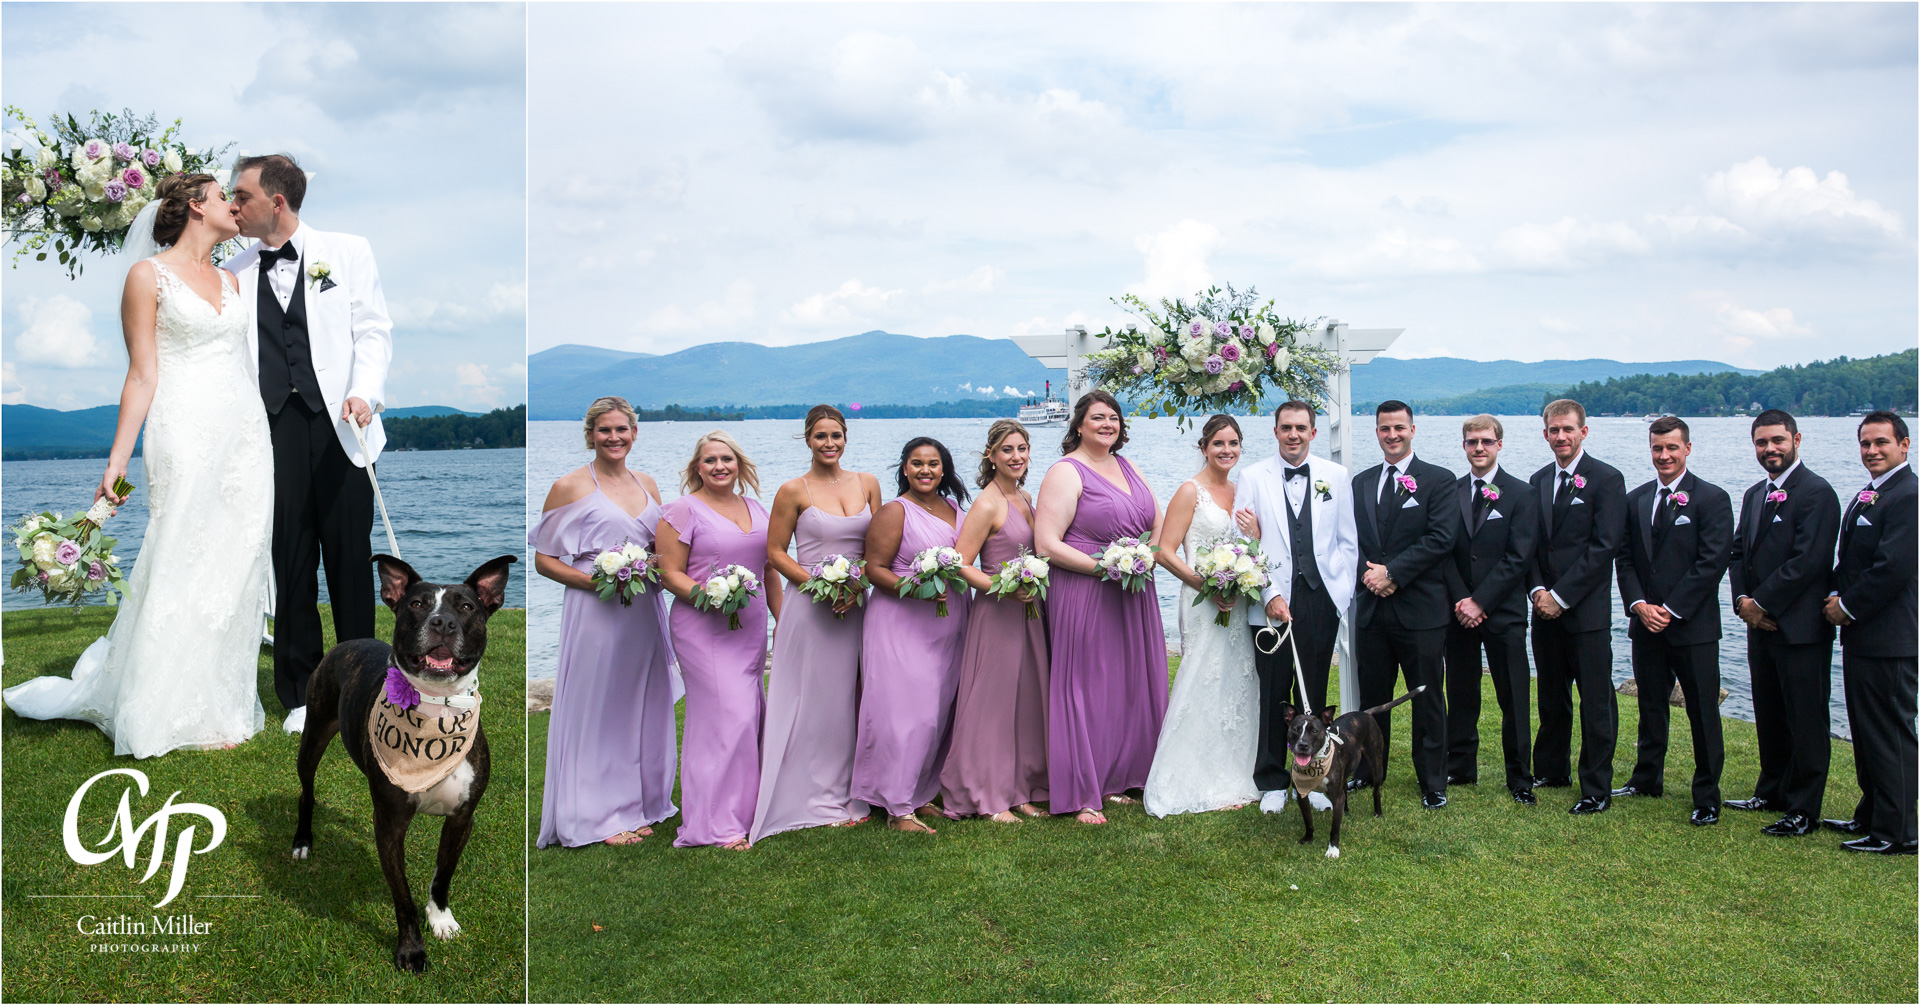 sale-8.jpg from Kendall and Chris's Lake George wedding at the Inn at Erlowest by Saratoga Wedding Photographer Caitlin Miller Photography. Lake George Wedding Photographer. Adirondack wedding photographer. Albany wedding photographer. Lake Placid Wedding Photographer. Saratoga Wedding Photographer